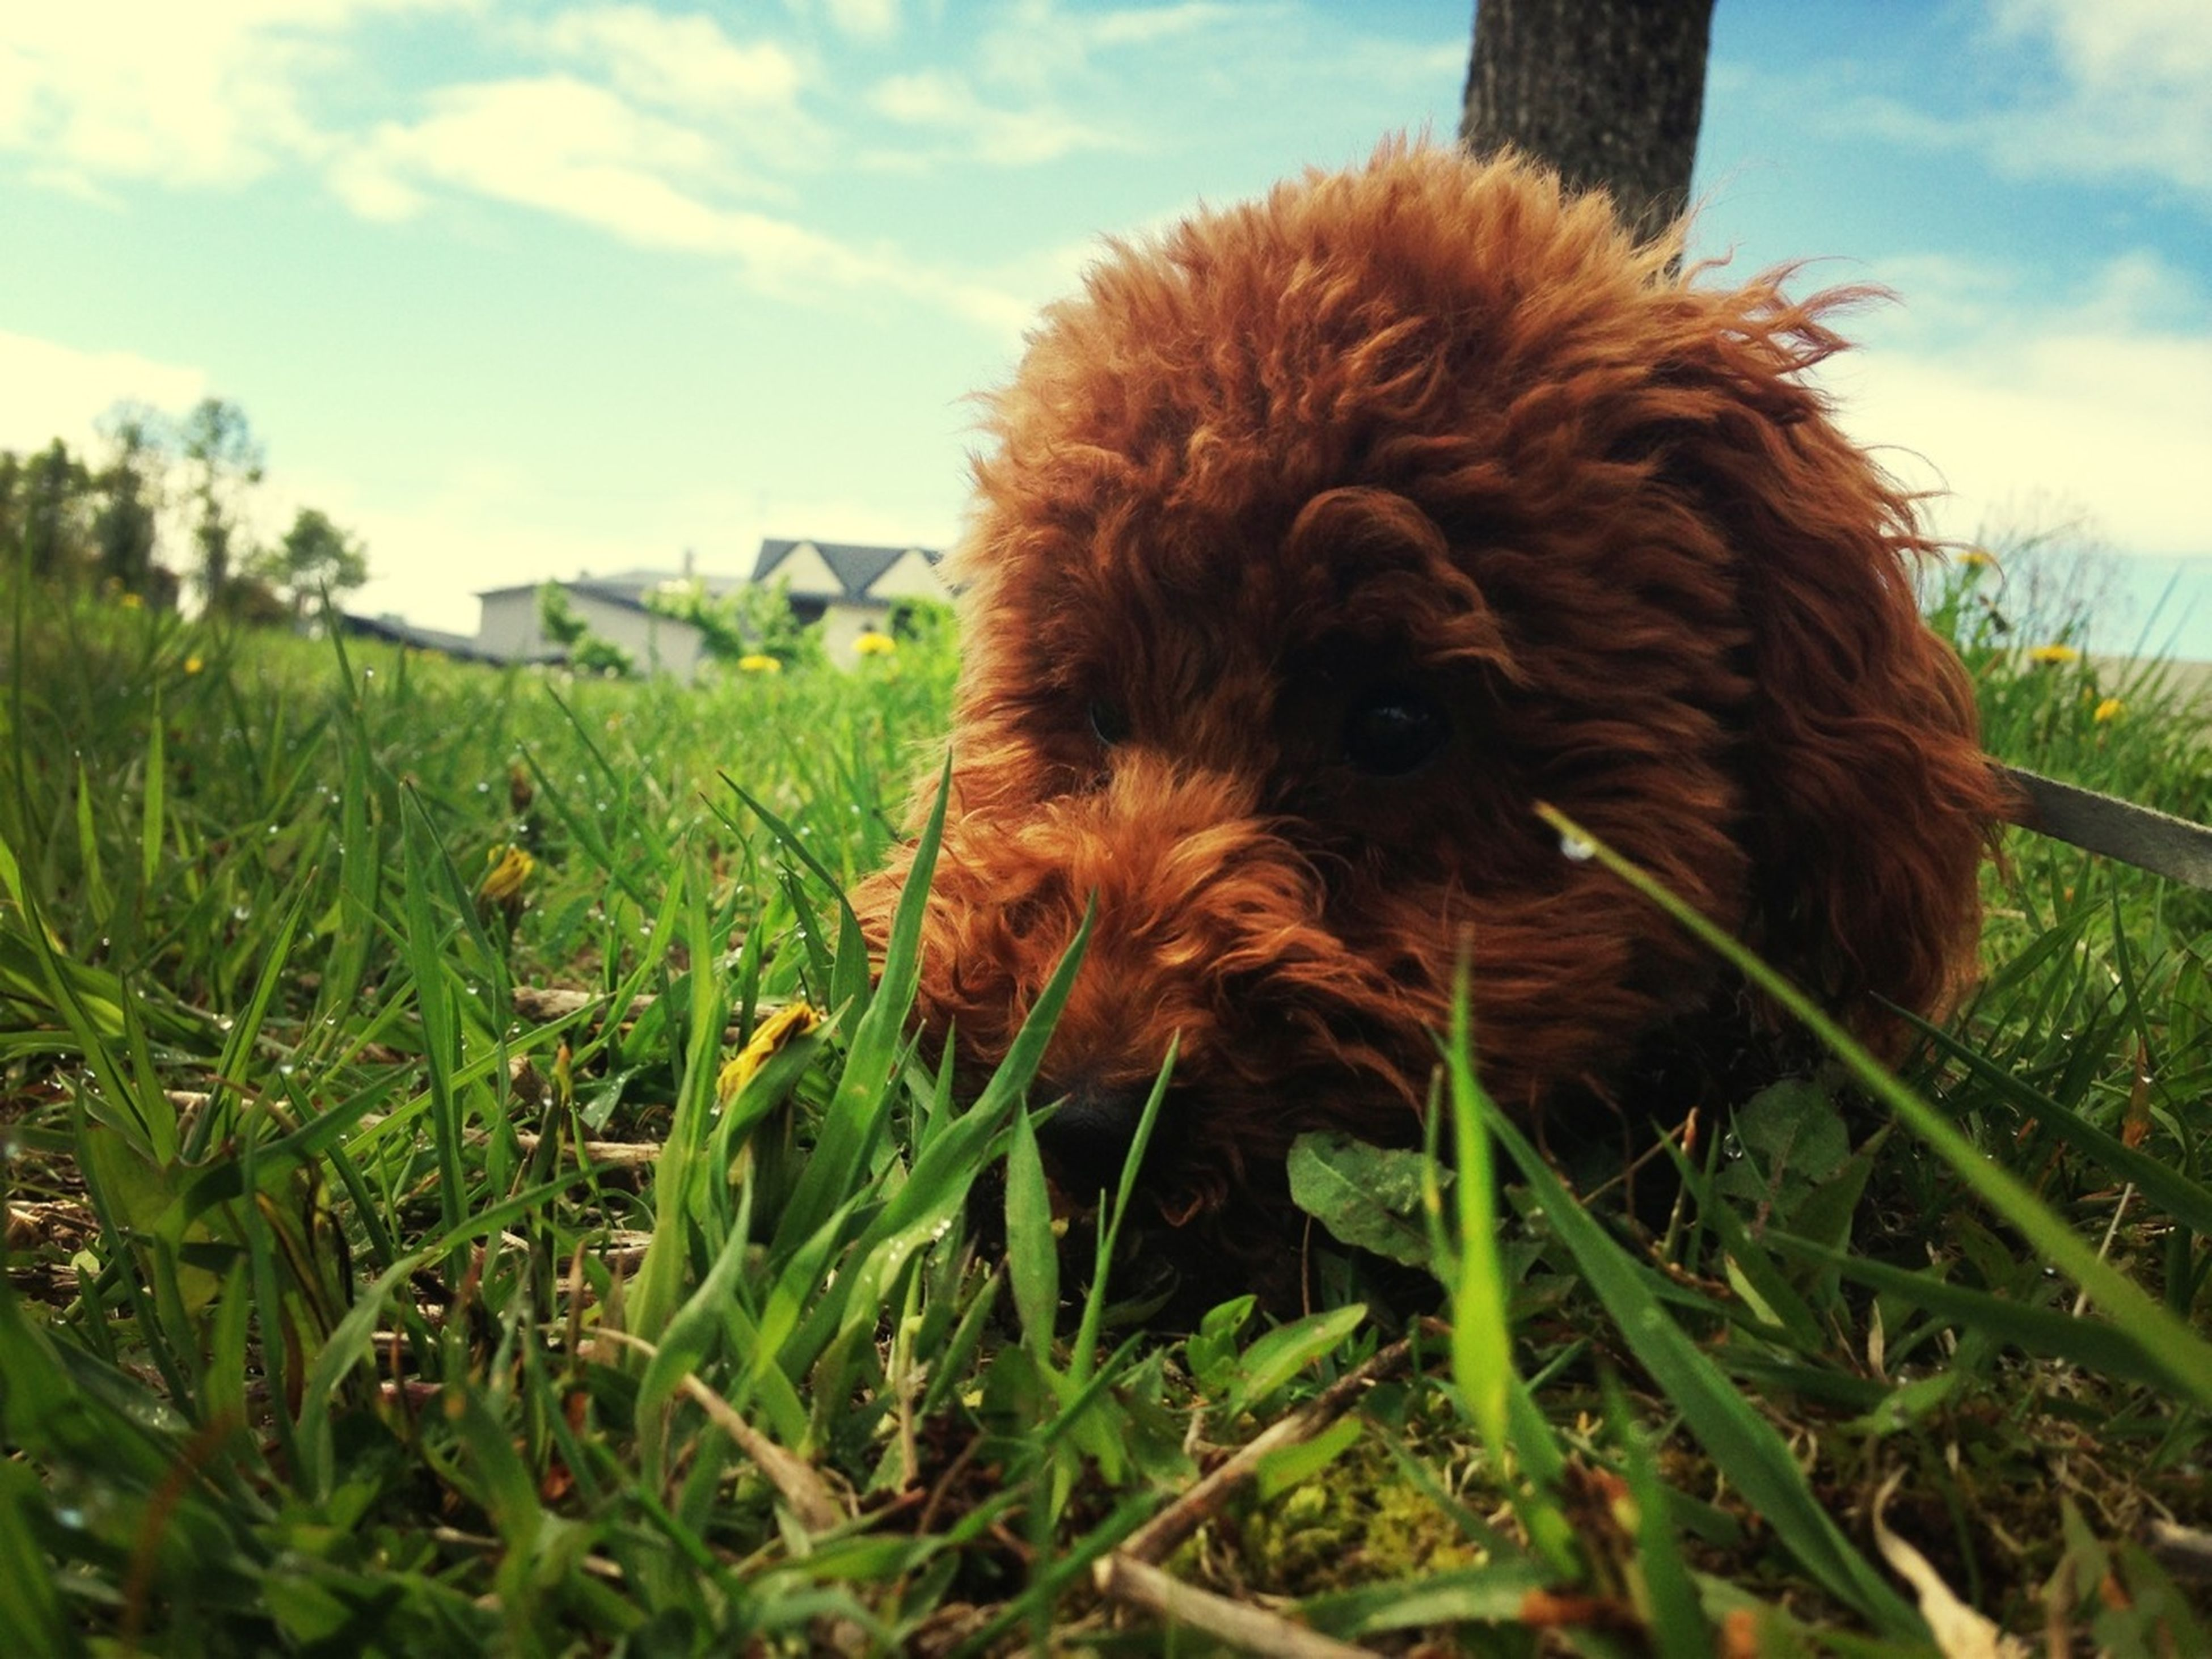 animal themes, one animal, domestic animals, grass, mammal, dog, pets, sky, field, grassy, brown, animal hair, growth, green color, nature, no people, outdoors, day, plant, close-up